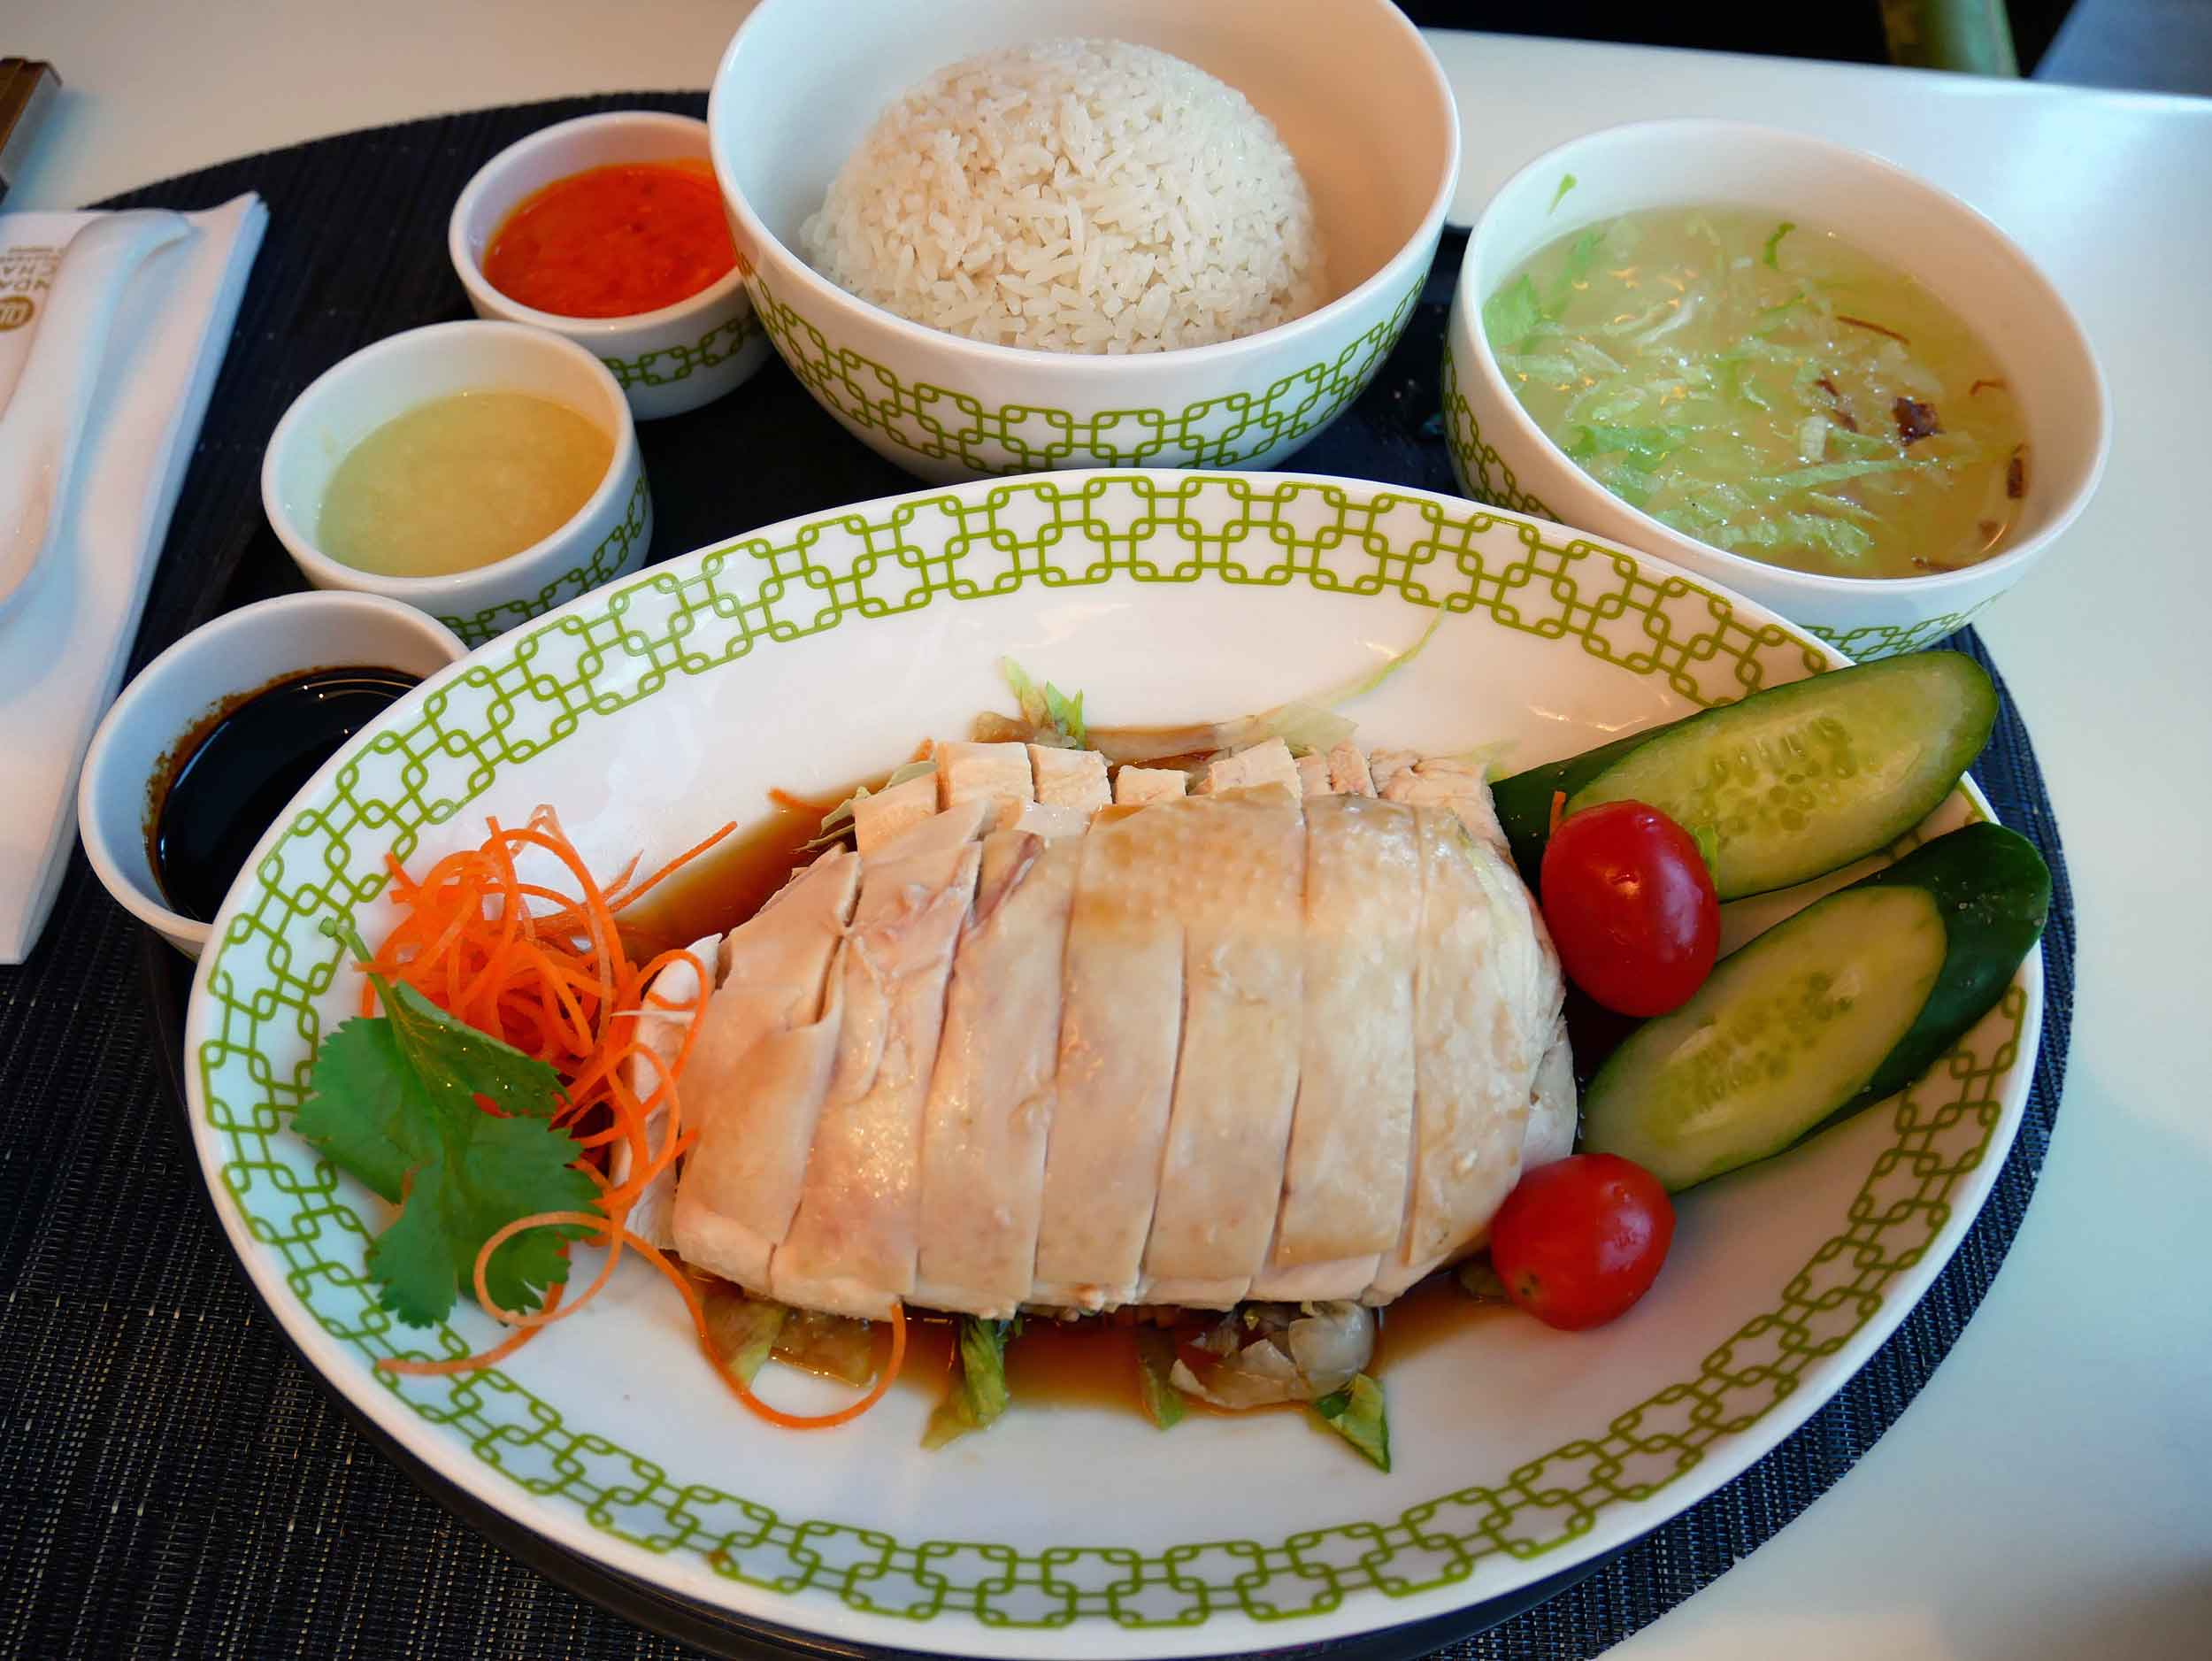 The famous Hainan Chicken Rice at Chatterbox was our first taste of Singapore.